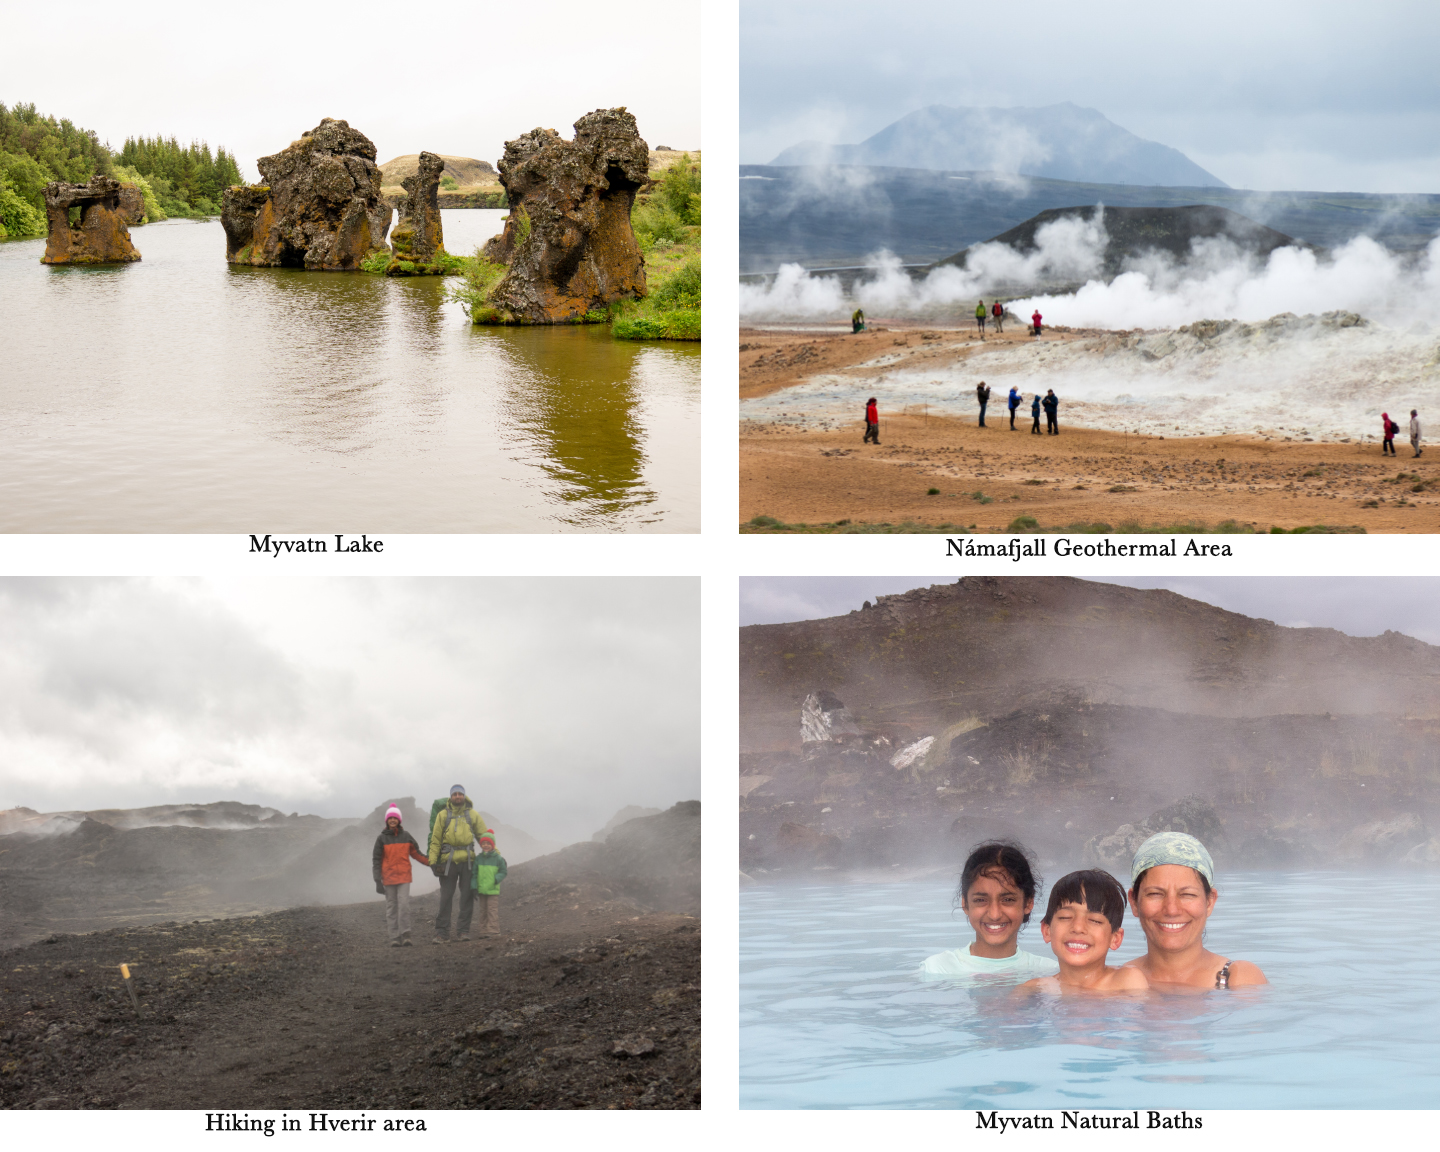 group of photos of lake, people watching geothermal activities, family hiking on lava field and a woman with her kids in the natural pool